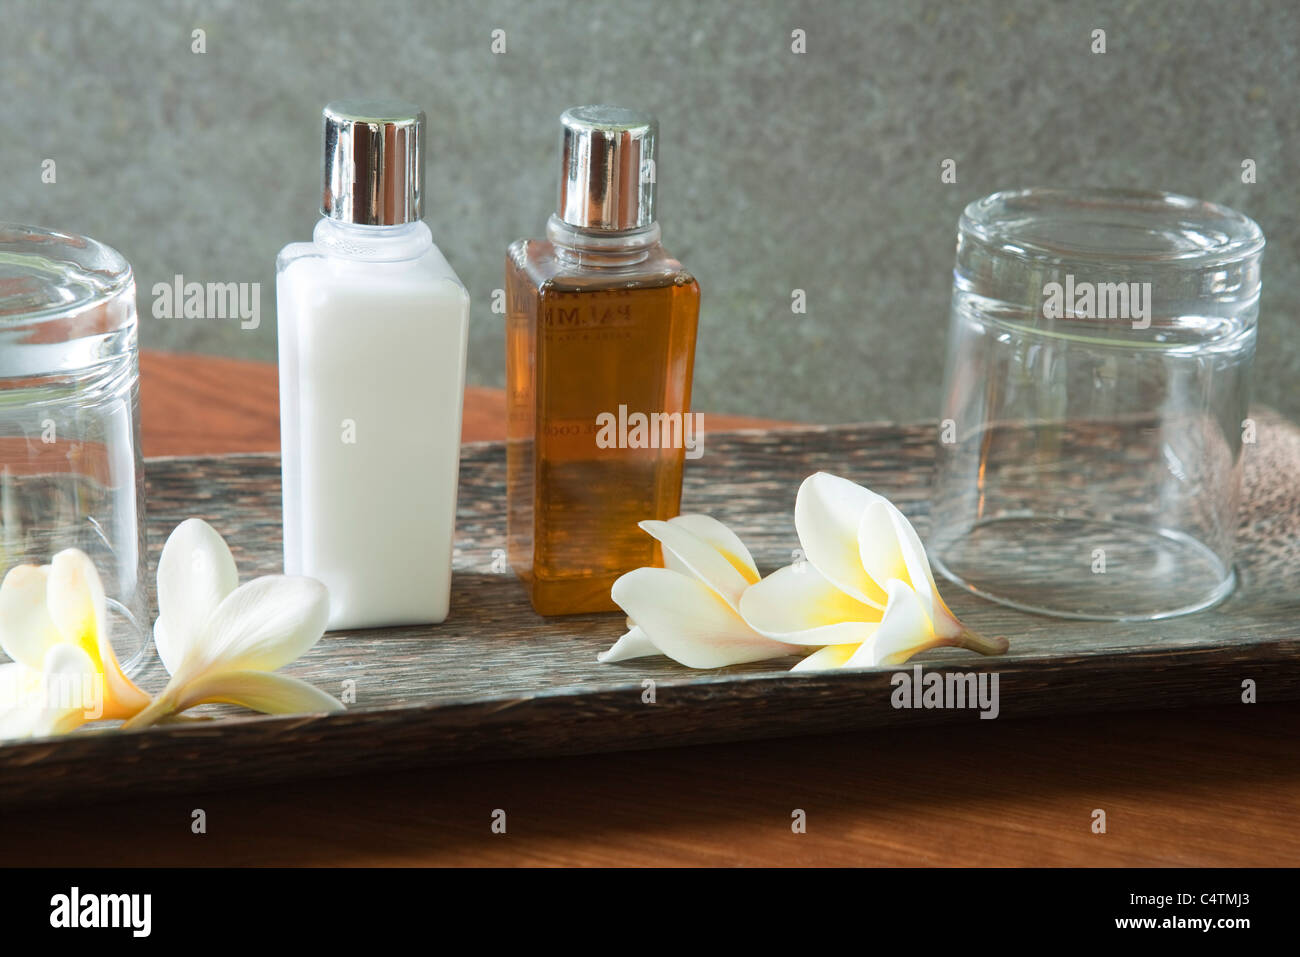 Perfume bottle and glasses on tray with frangipani flowers - Stock Image